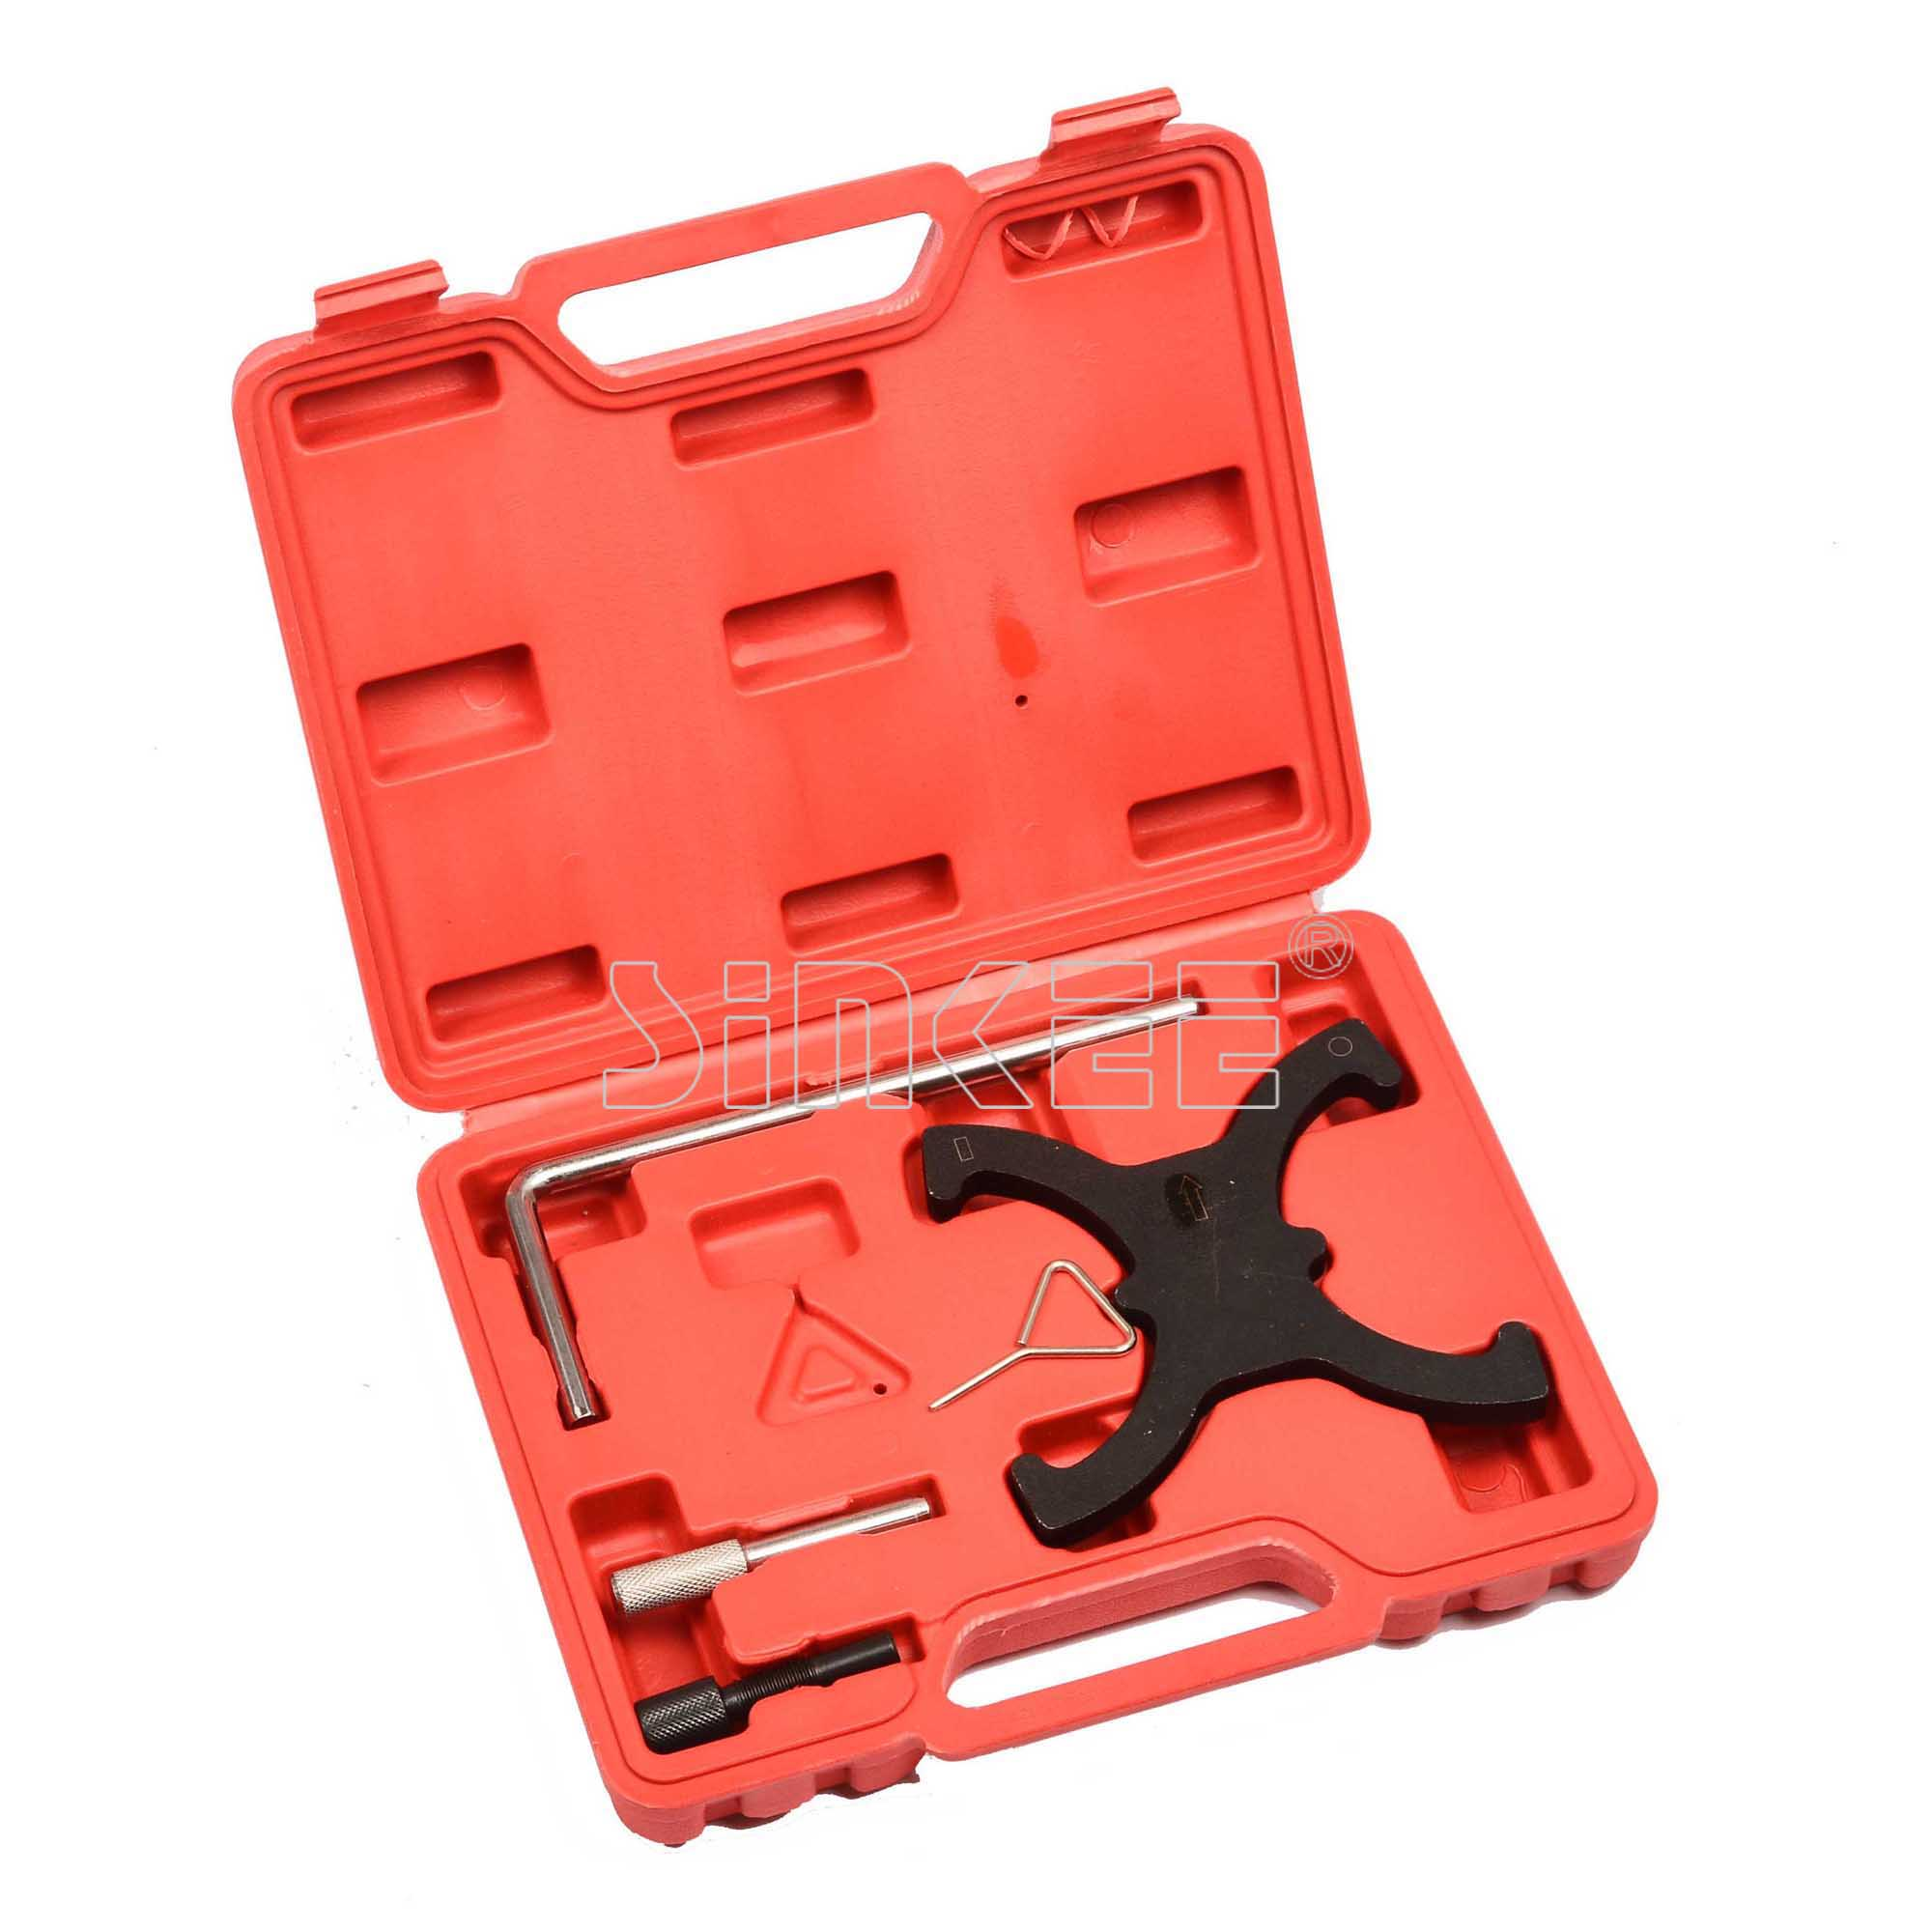 Petrol Engine Timing Camshaft Crankshaft Lock Tool For Ford Focus C MAX 1.6 TI-VCT